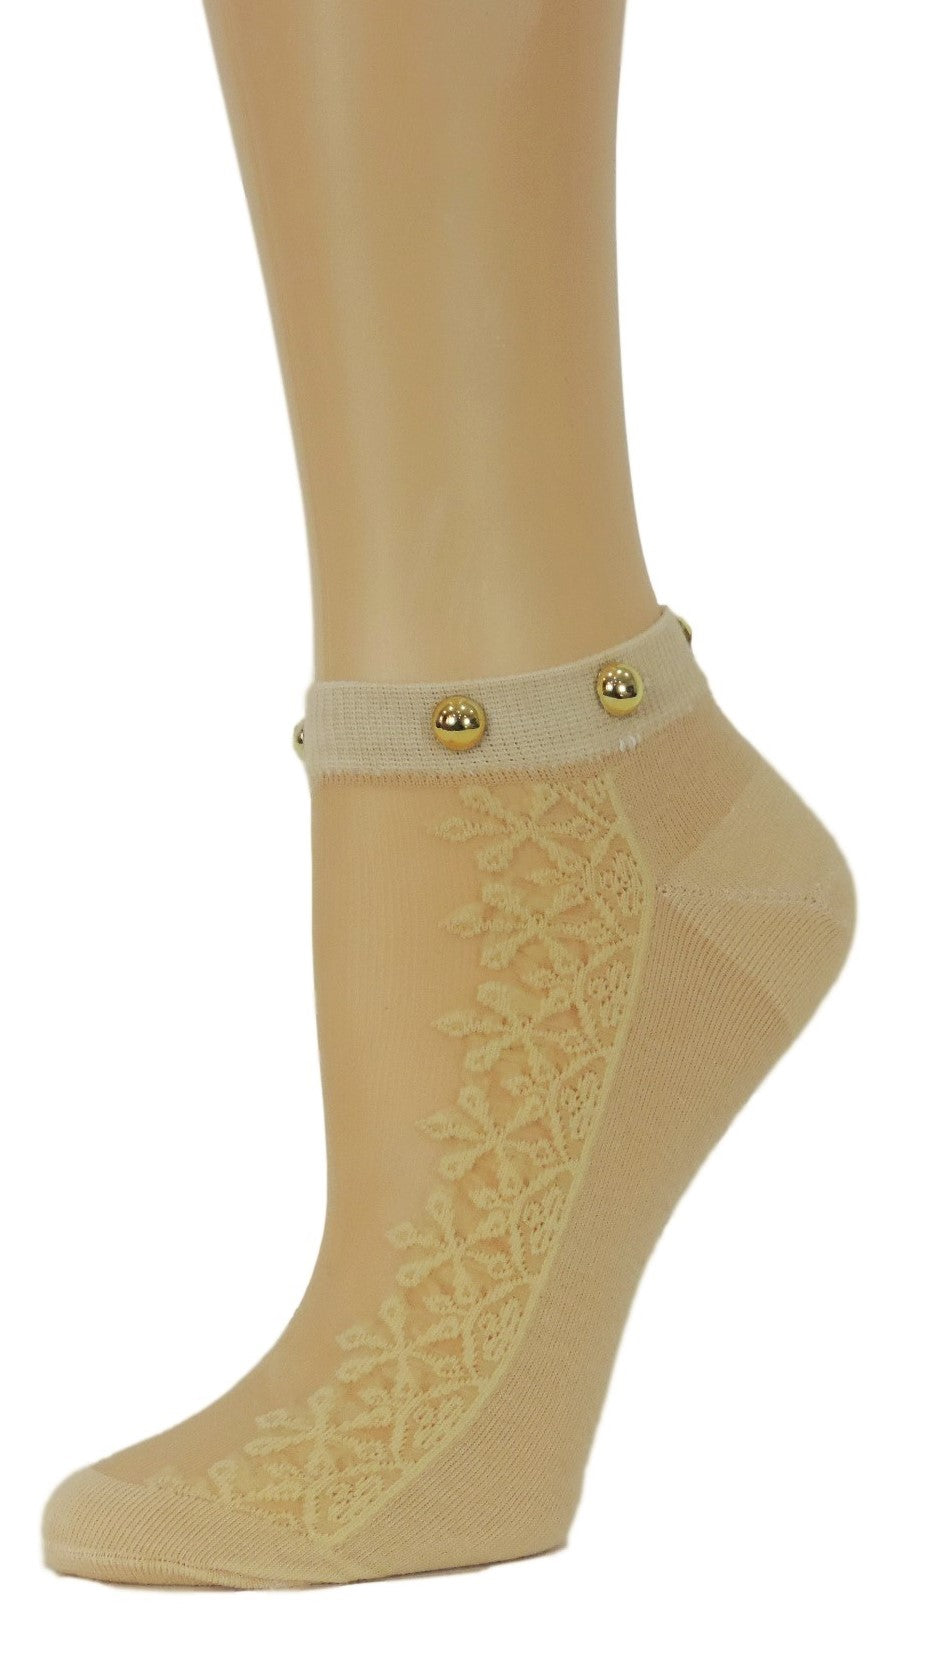 Sequence Floral Ankle Custom Sheer Socks with beads